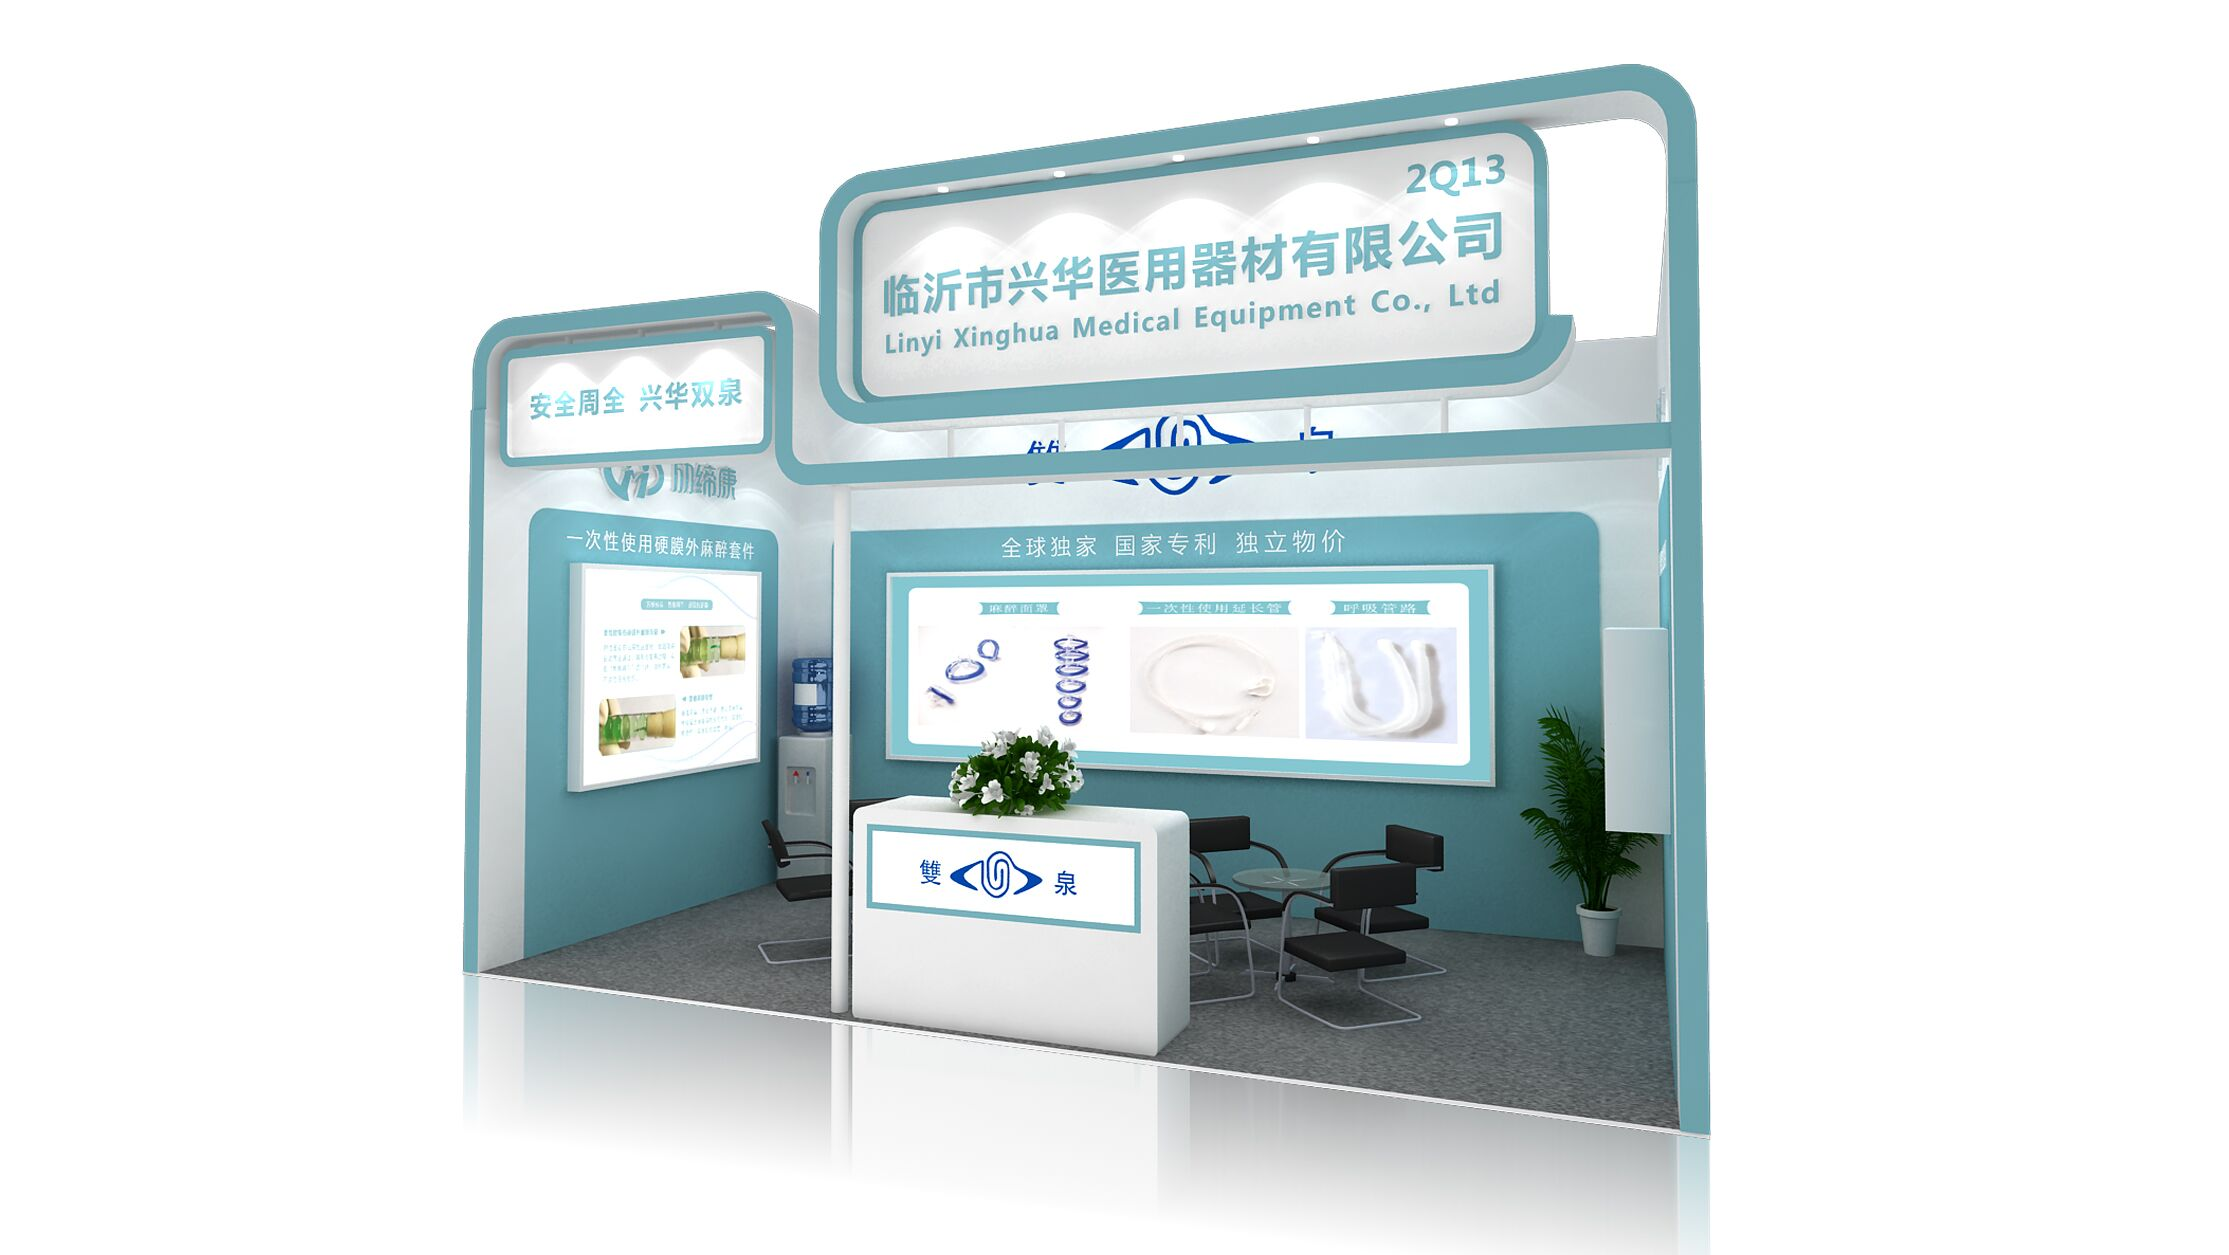 The 81st China International Medical Equipment (Spring) Expo